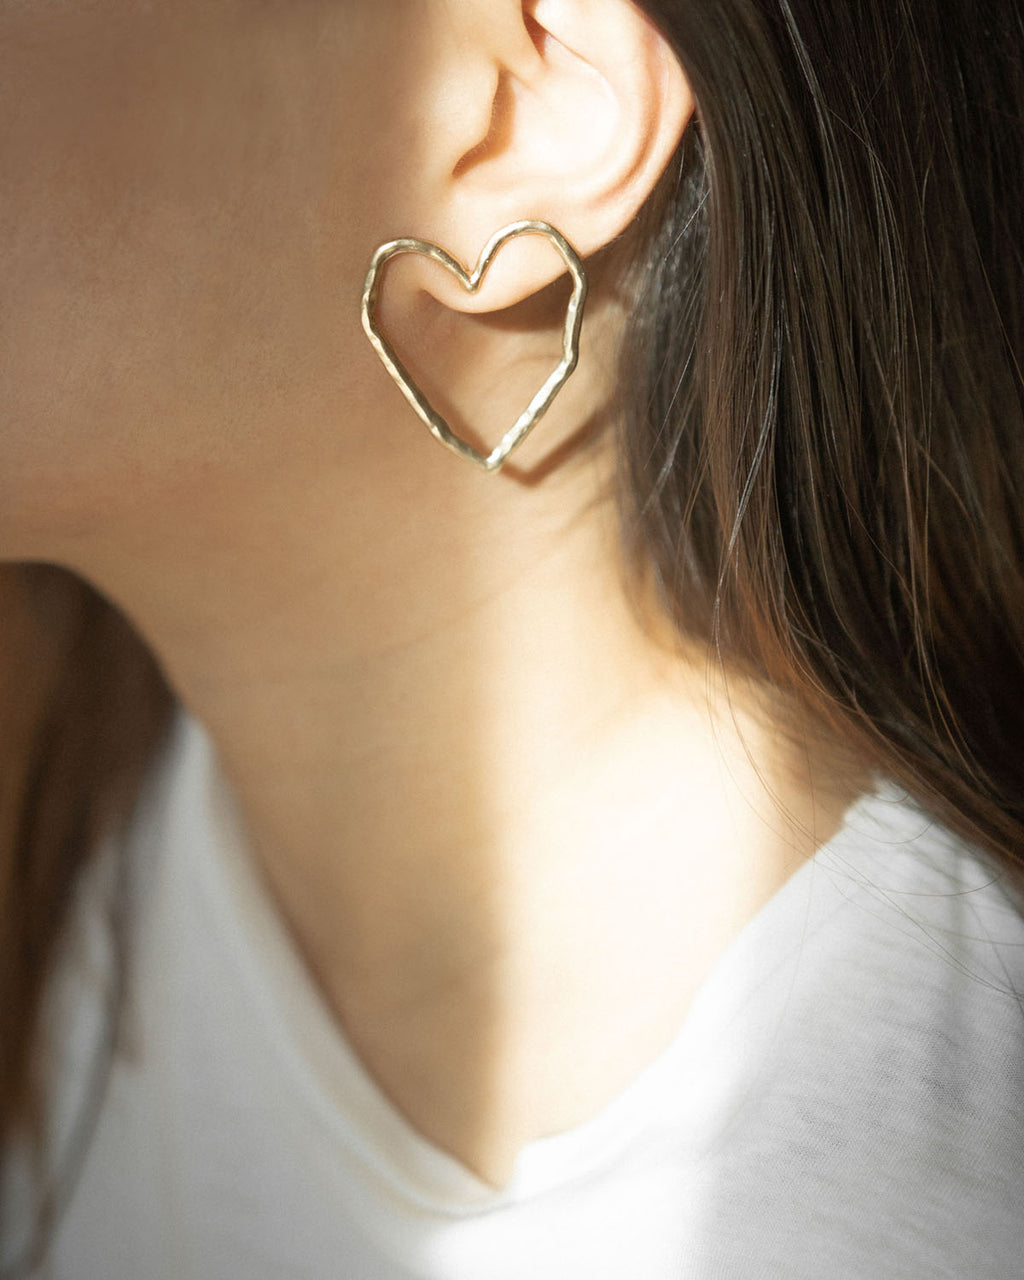 Statement heart shape earrings in matte gold - The Hexad Jewelry